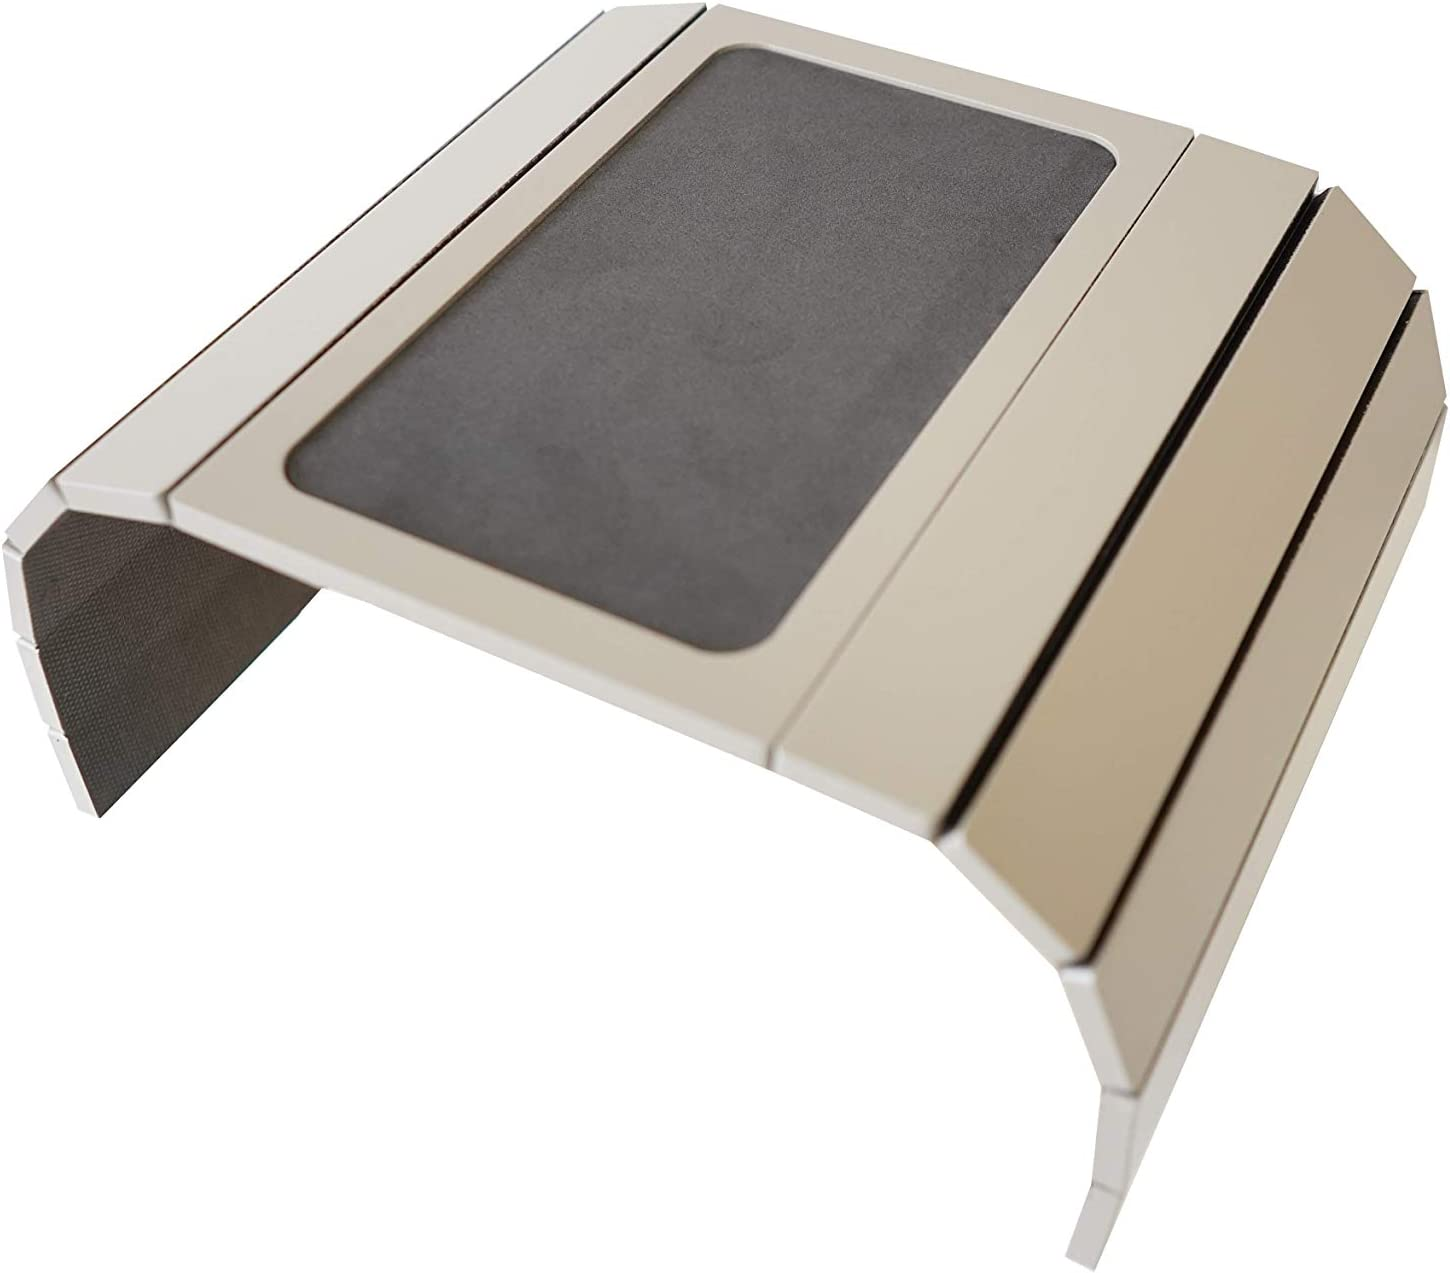 Meistar Global Sofa Couch Arm Tray A surprise price is realized with Table EVA Base. Ranking TOP10 Weighted